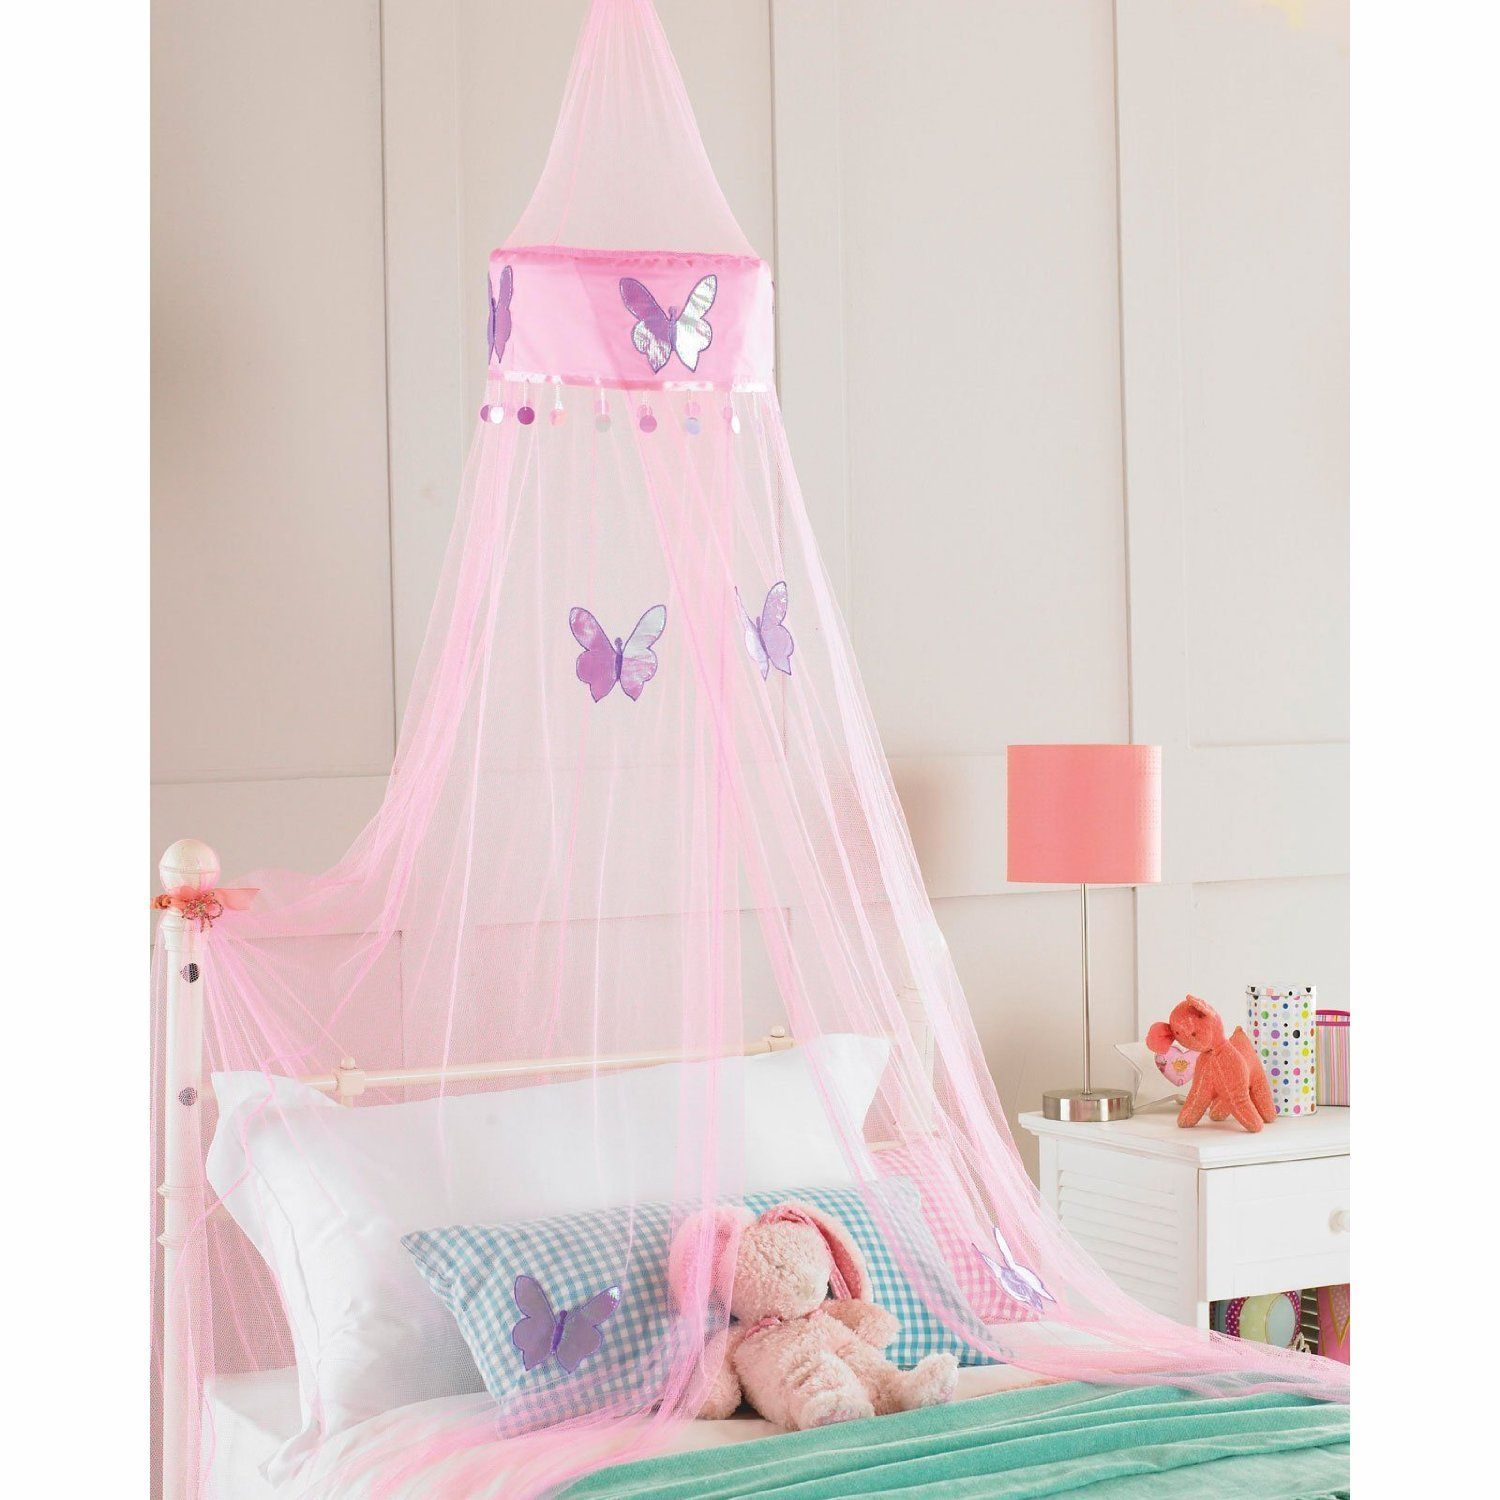 £12.49 Childrens Girls Bed Canopy Mosquito Fly Netting Net 30x230cm - Pink Butterfly Amazon  sc 1 st  Pinterest & 12.49 Childrens Girls Bed Canopy Mosquito Fly Netting Net 30x230cm ...